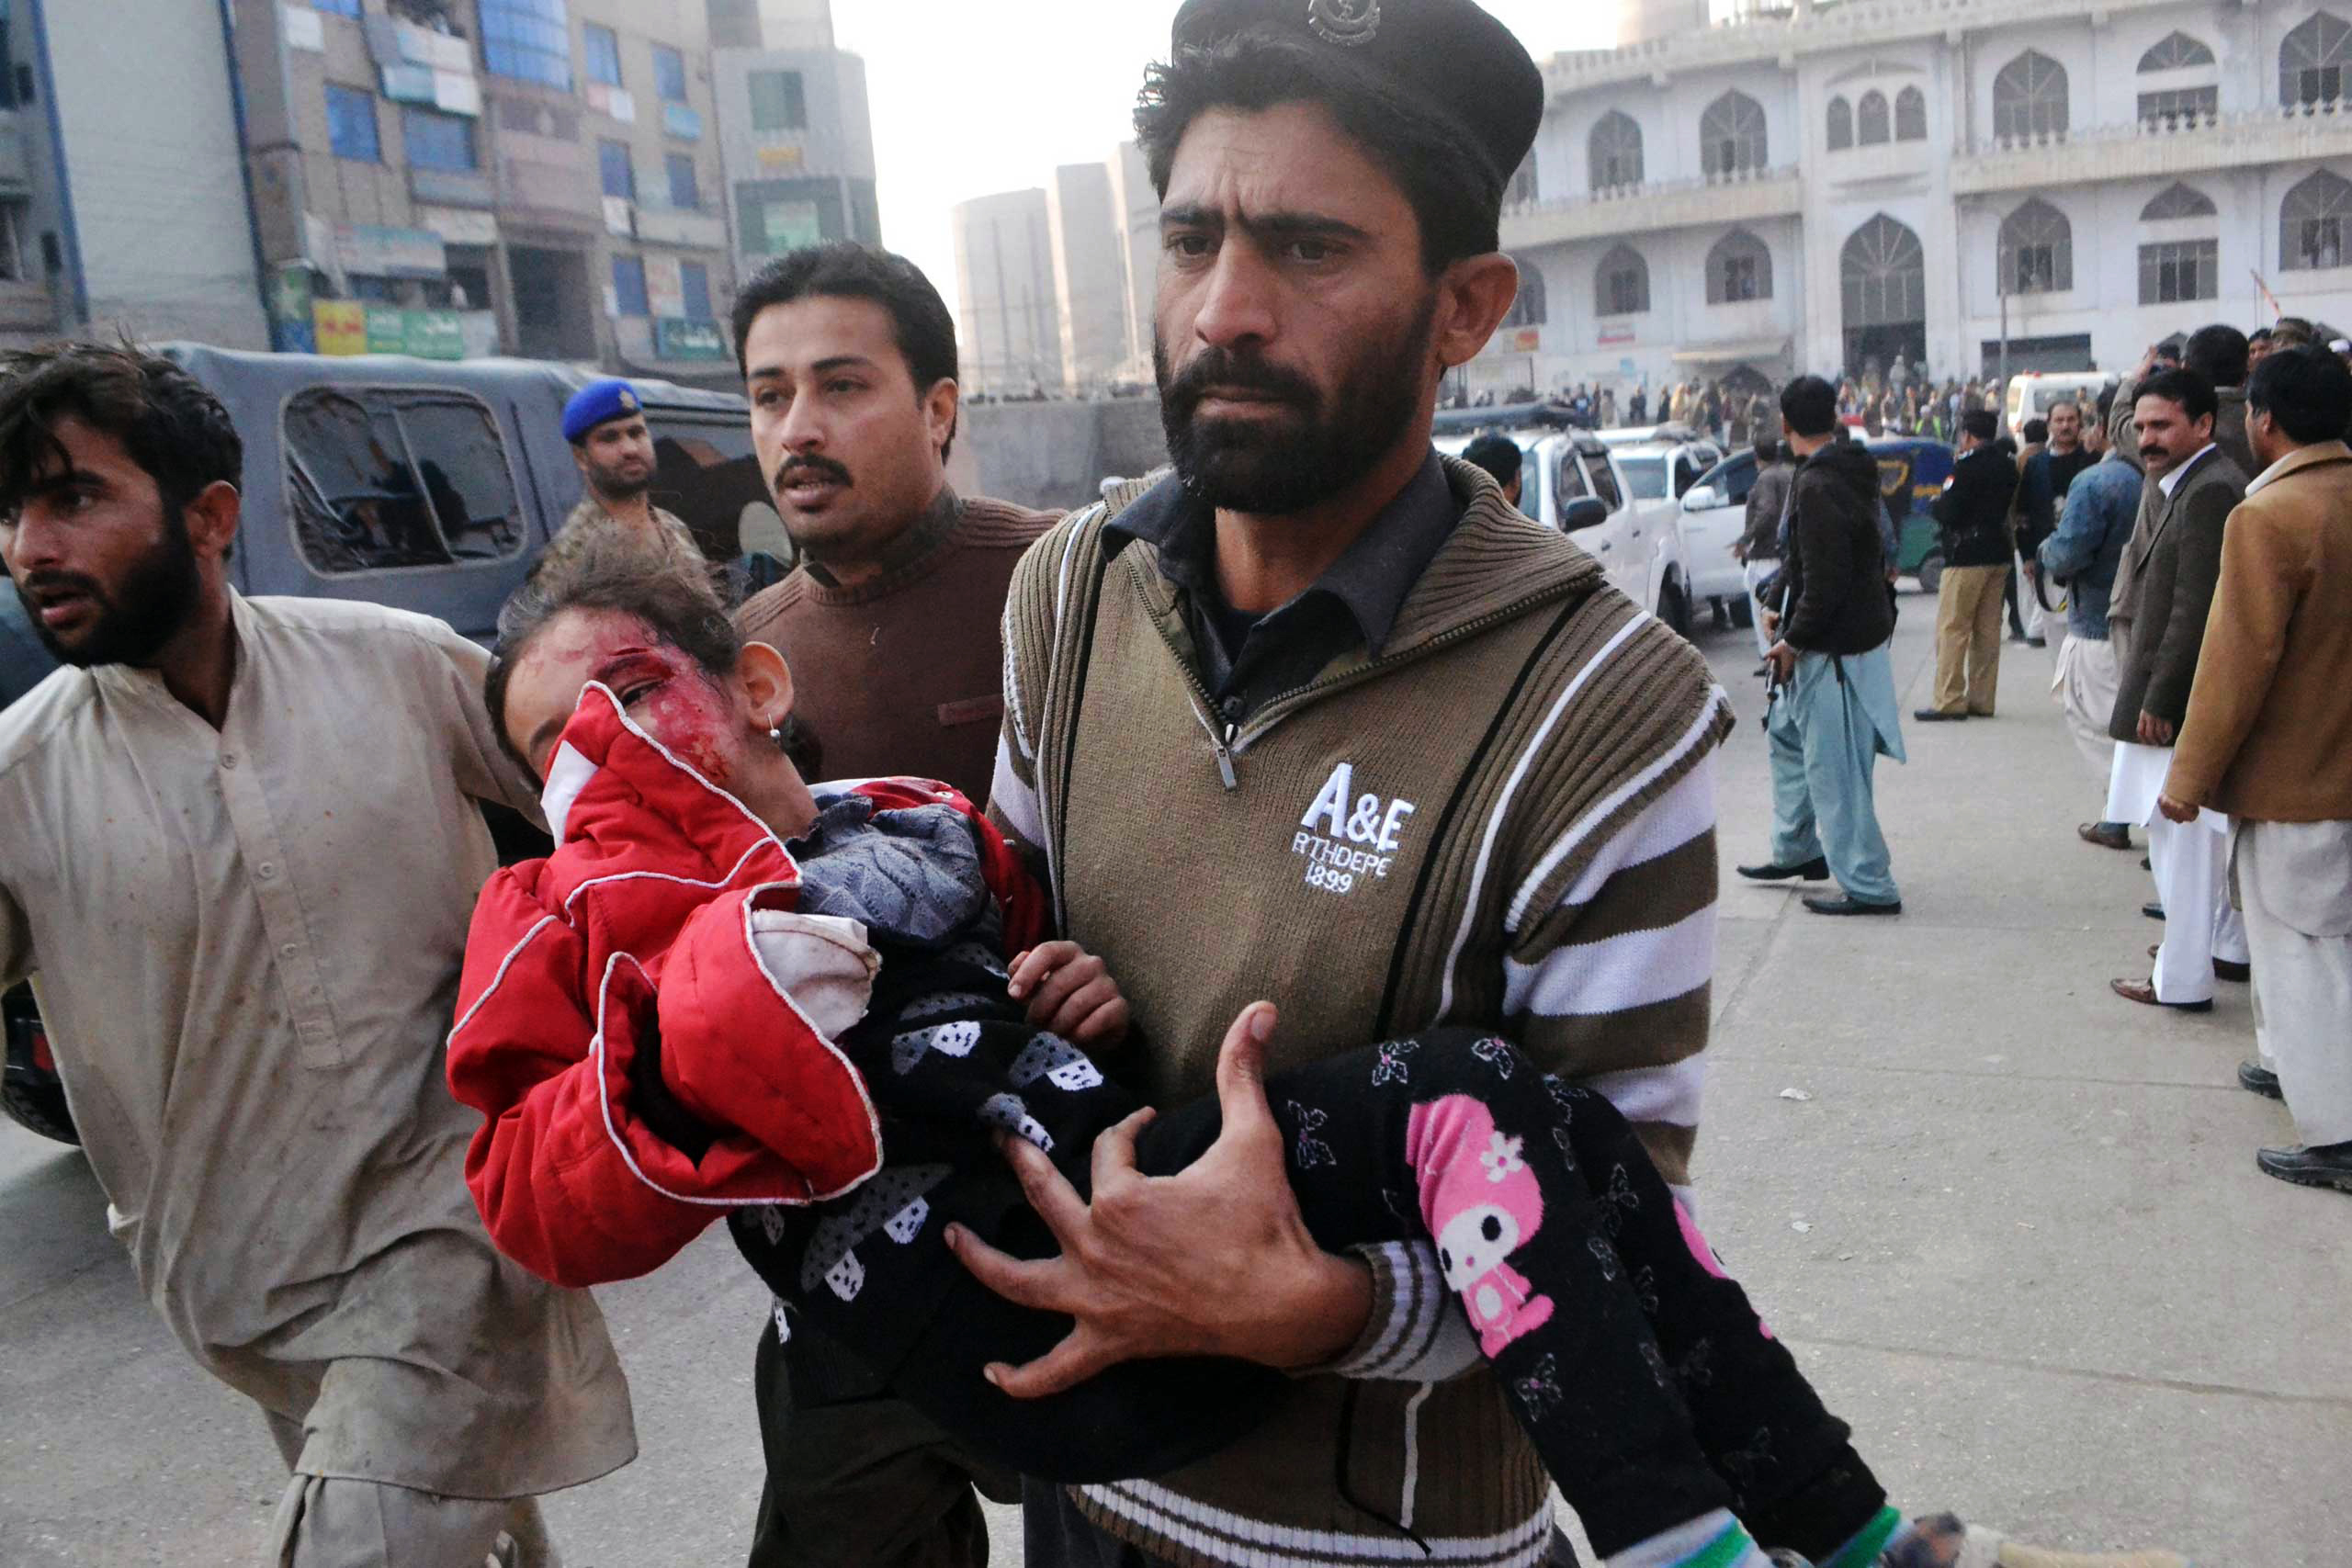 A Pakistani girl, who was injured in a Taliban attack in a school, is rushed to a hospital in Peshawar, Pakistan, Tuesday, Dec. 16, 2014. Taliban gunmen stormed a military-run school in the northwestern Pakistani city of Peshawar on Tuesday, killing and wounding scores, officials said, in the highest-profile militant attack to hit the troubled region in months.(AP Photo/Mohammad Sajjad)